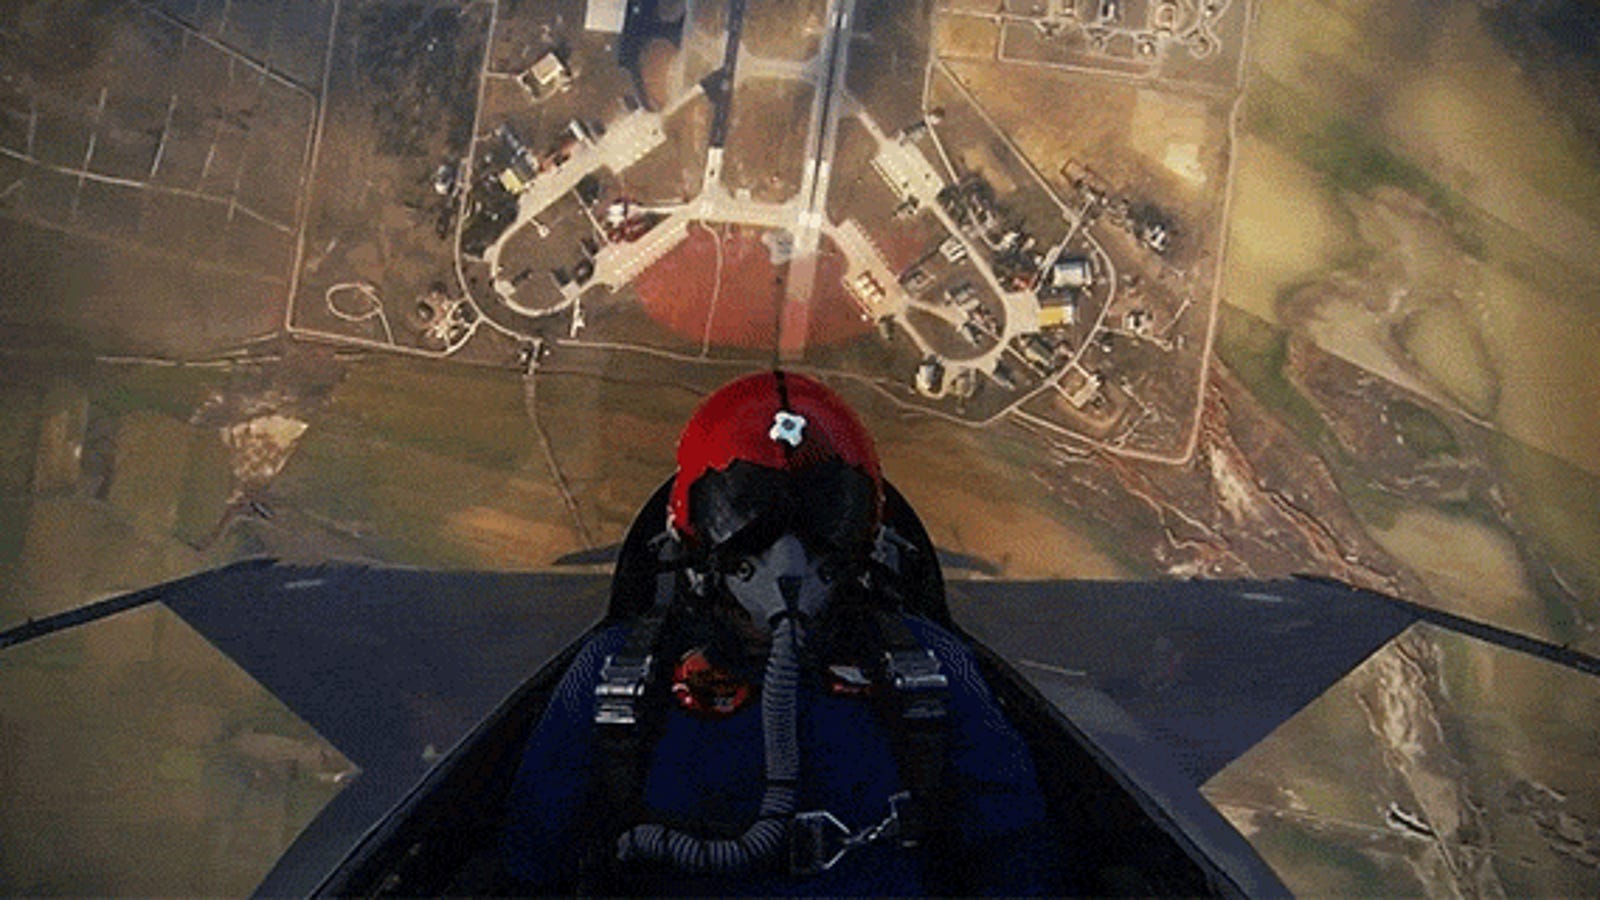 Watch a F-16 Take Off and Incredibly Shoot Up 15,000 Feet in the Air in Seconds